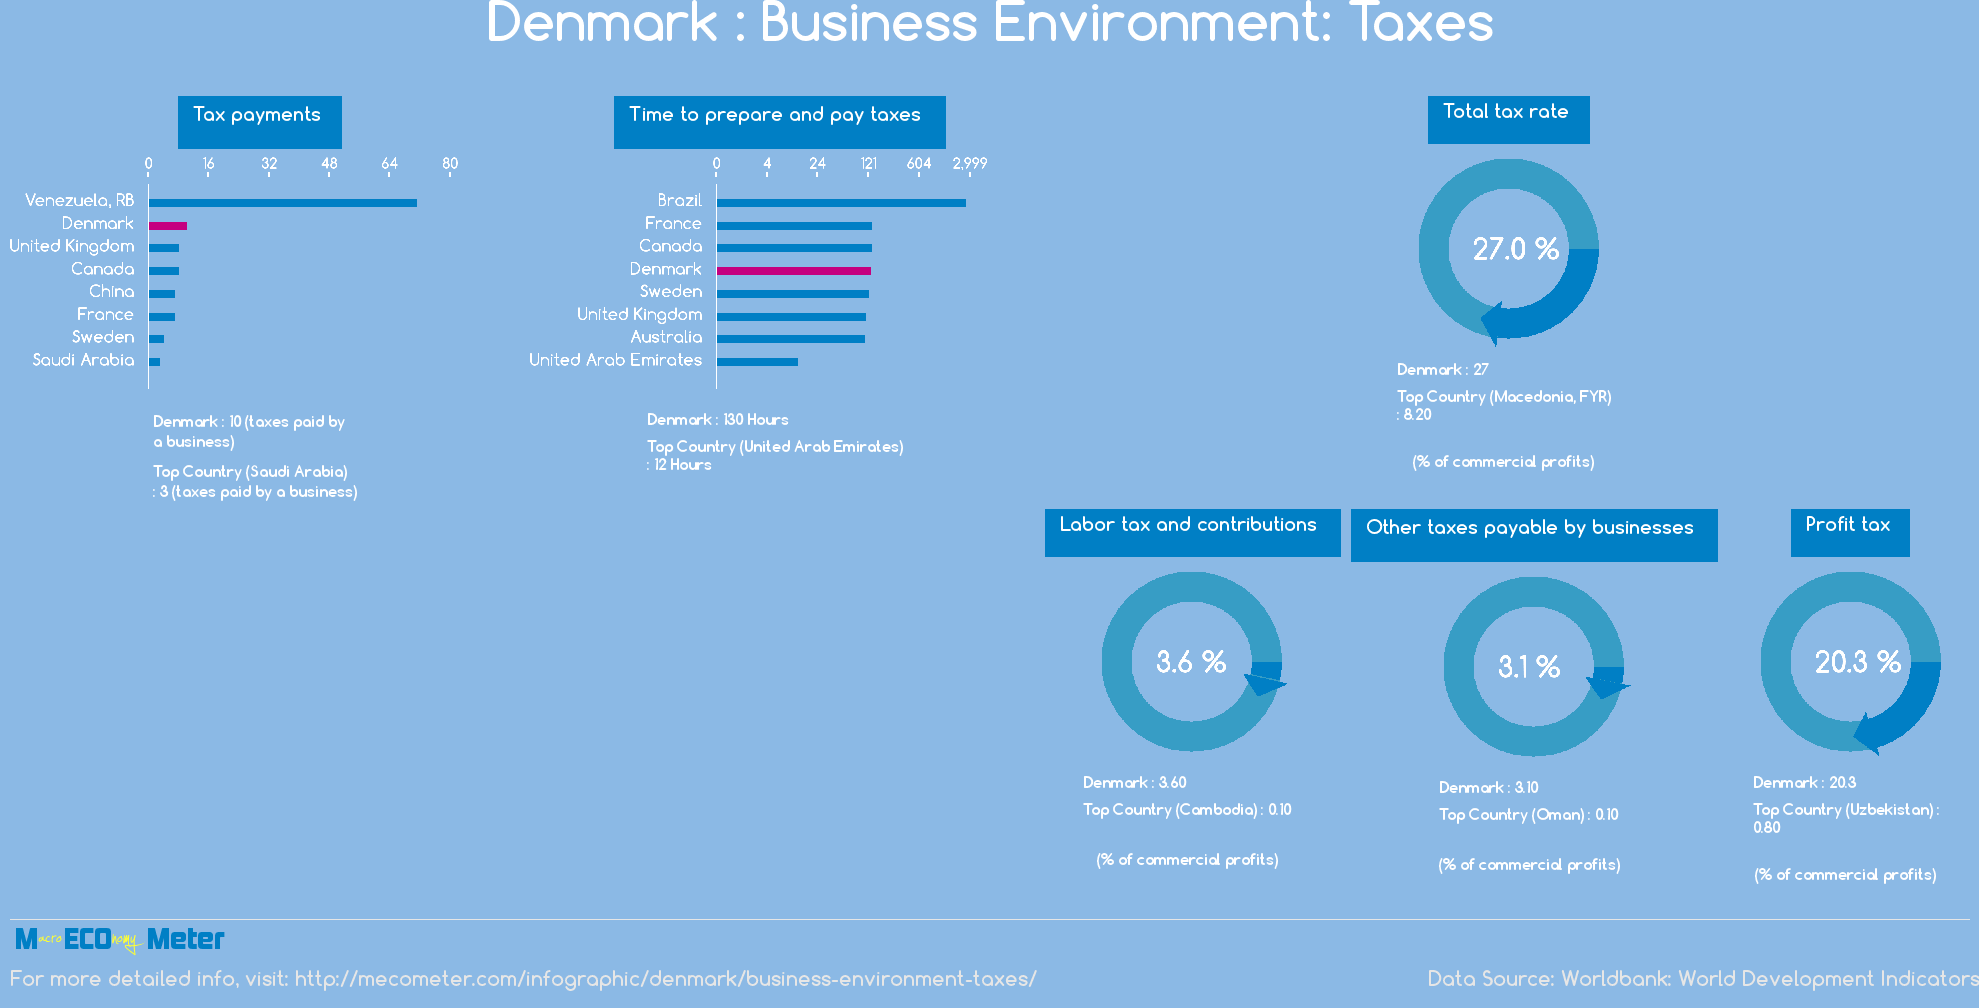 Denmark : Business Environment: Taxes